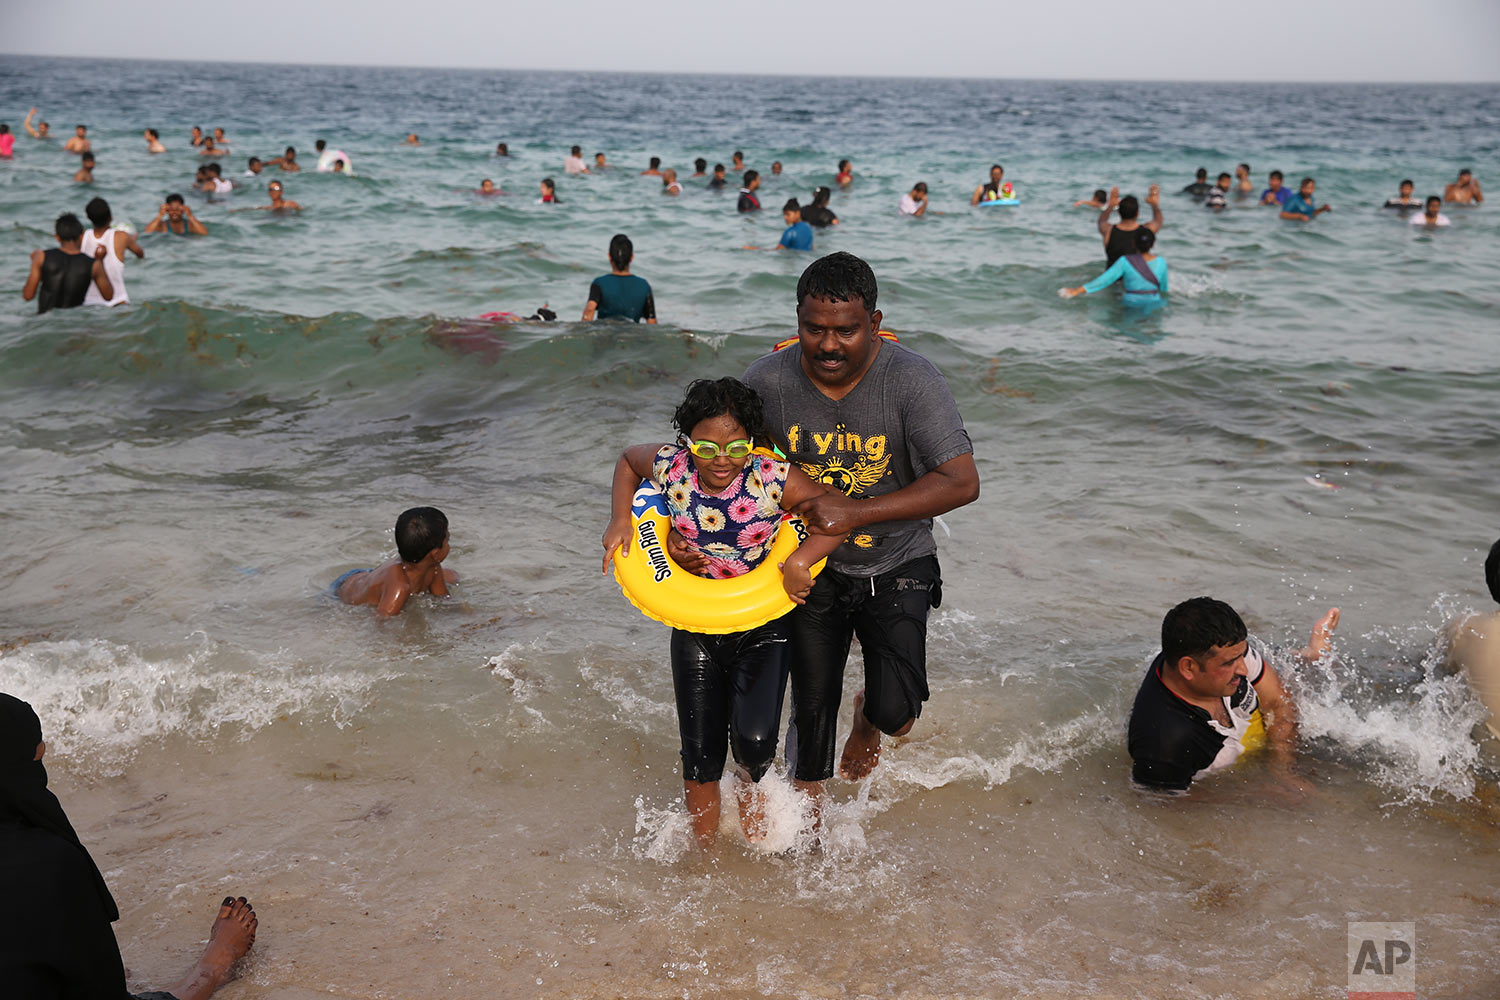 In this Friday, April 19, 2019 photo, a man helps a girl to get out of the water as the people enjoy swimming at the Sealine Beach about 40 kms, 25 miles, south of Doha, Qatar. (AP Photo/Kamran Jebreili)